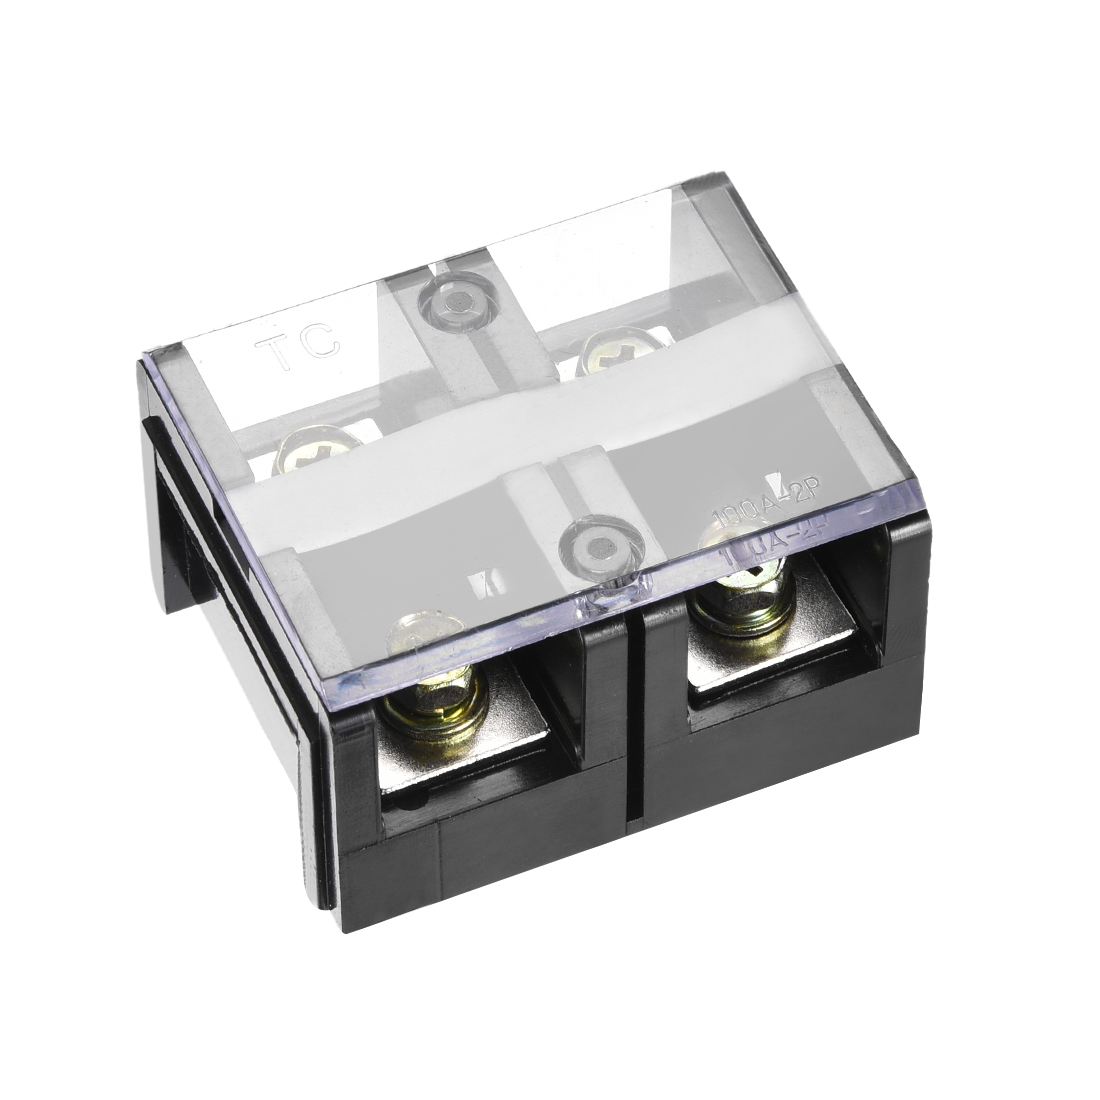 Barrier Terminal Block 600V 100A 2 Positions Dual Rows Screw Terminals 5 Pcs - image 3 of 3